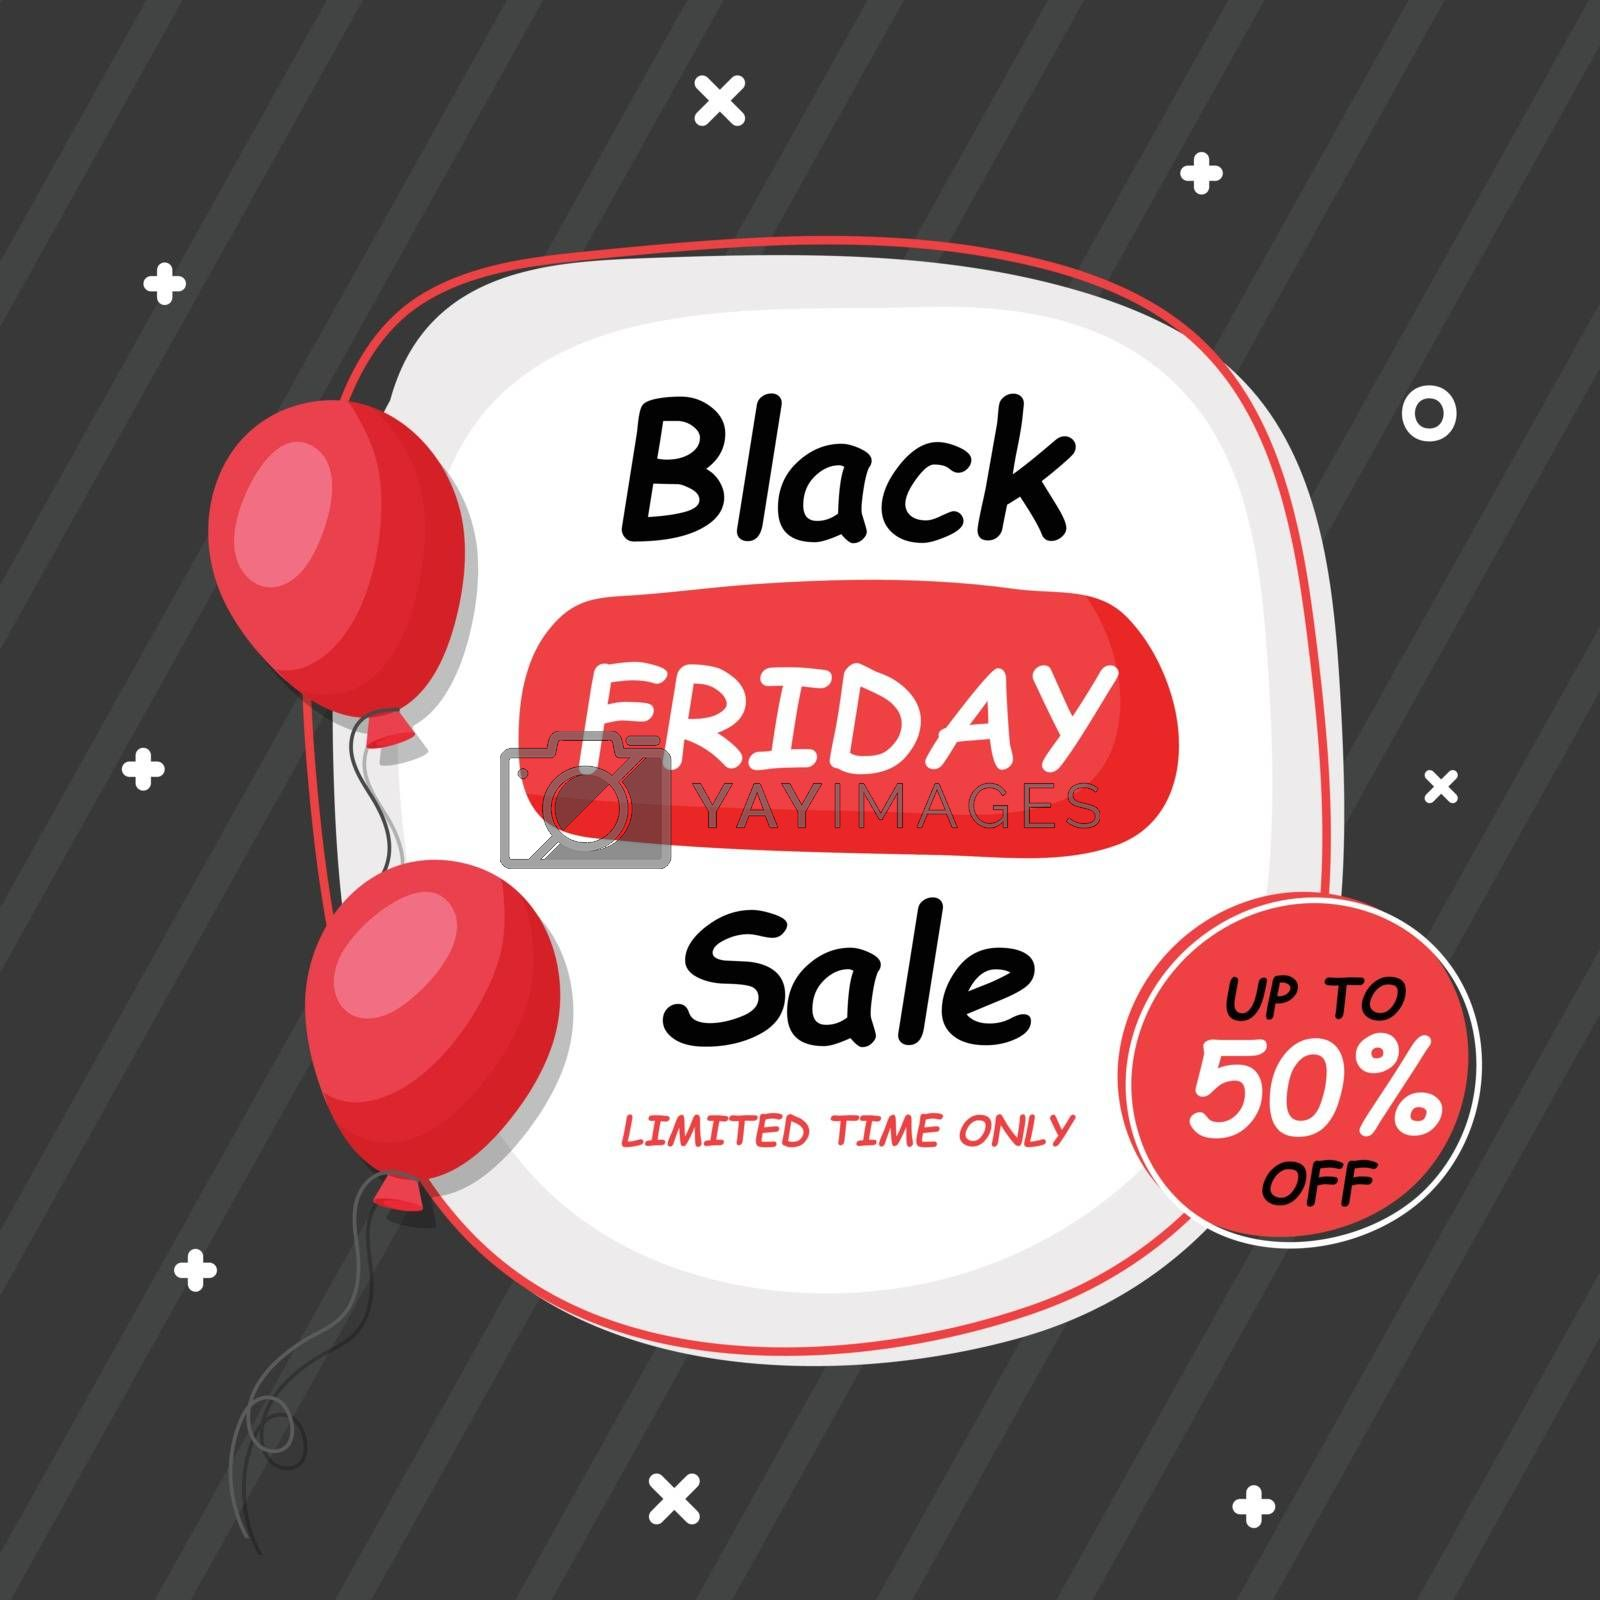 UpTo 50% off for Black Friday Sale banner or poster design decor by aispl